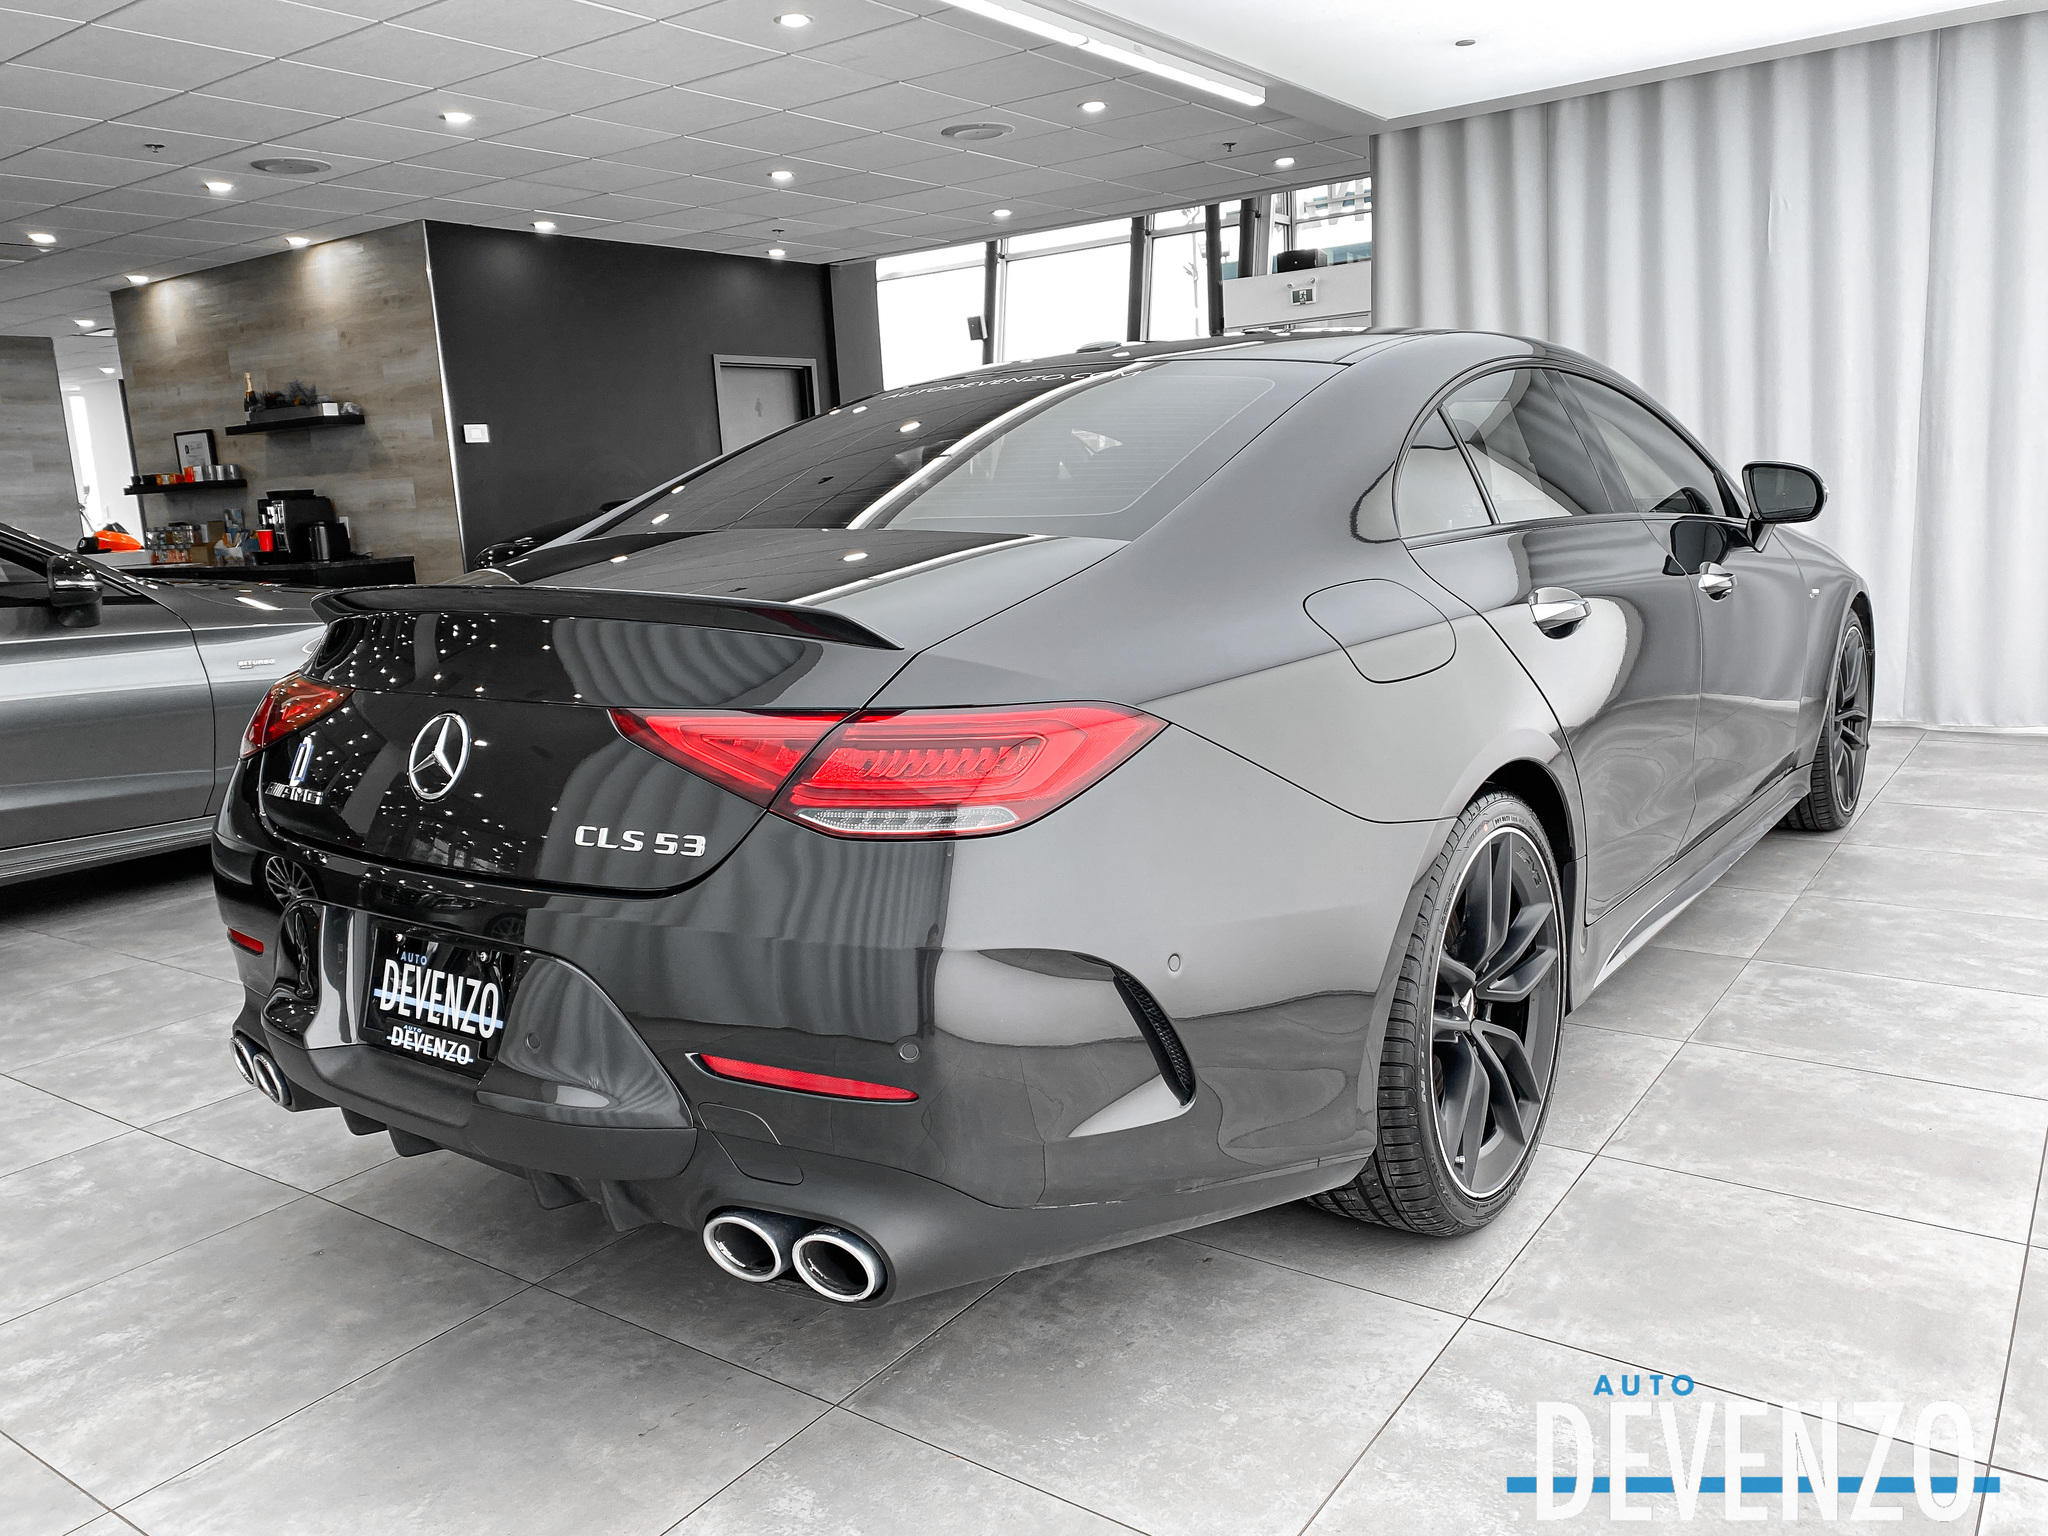 2019 Mercedes-Benz CLS-Class AMG CLS53 4MATIC+ Coupe 429HP EDITION 1 complet